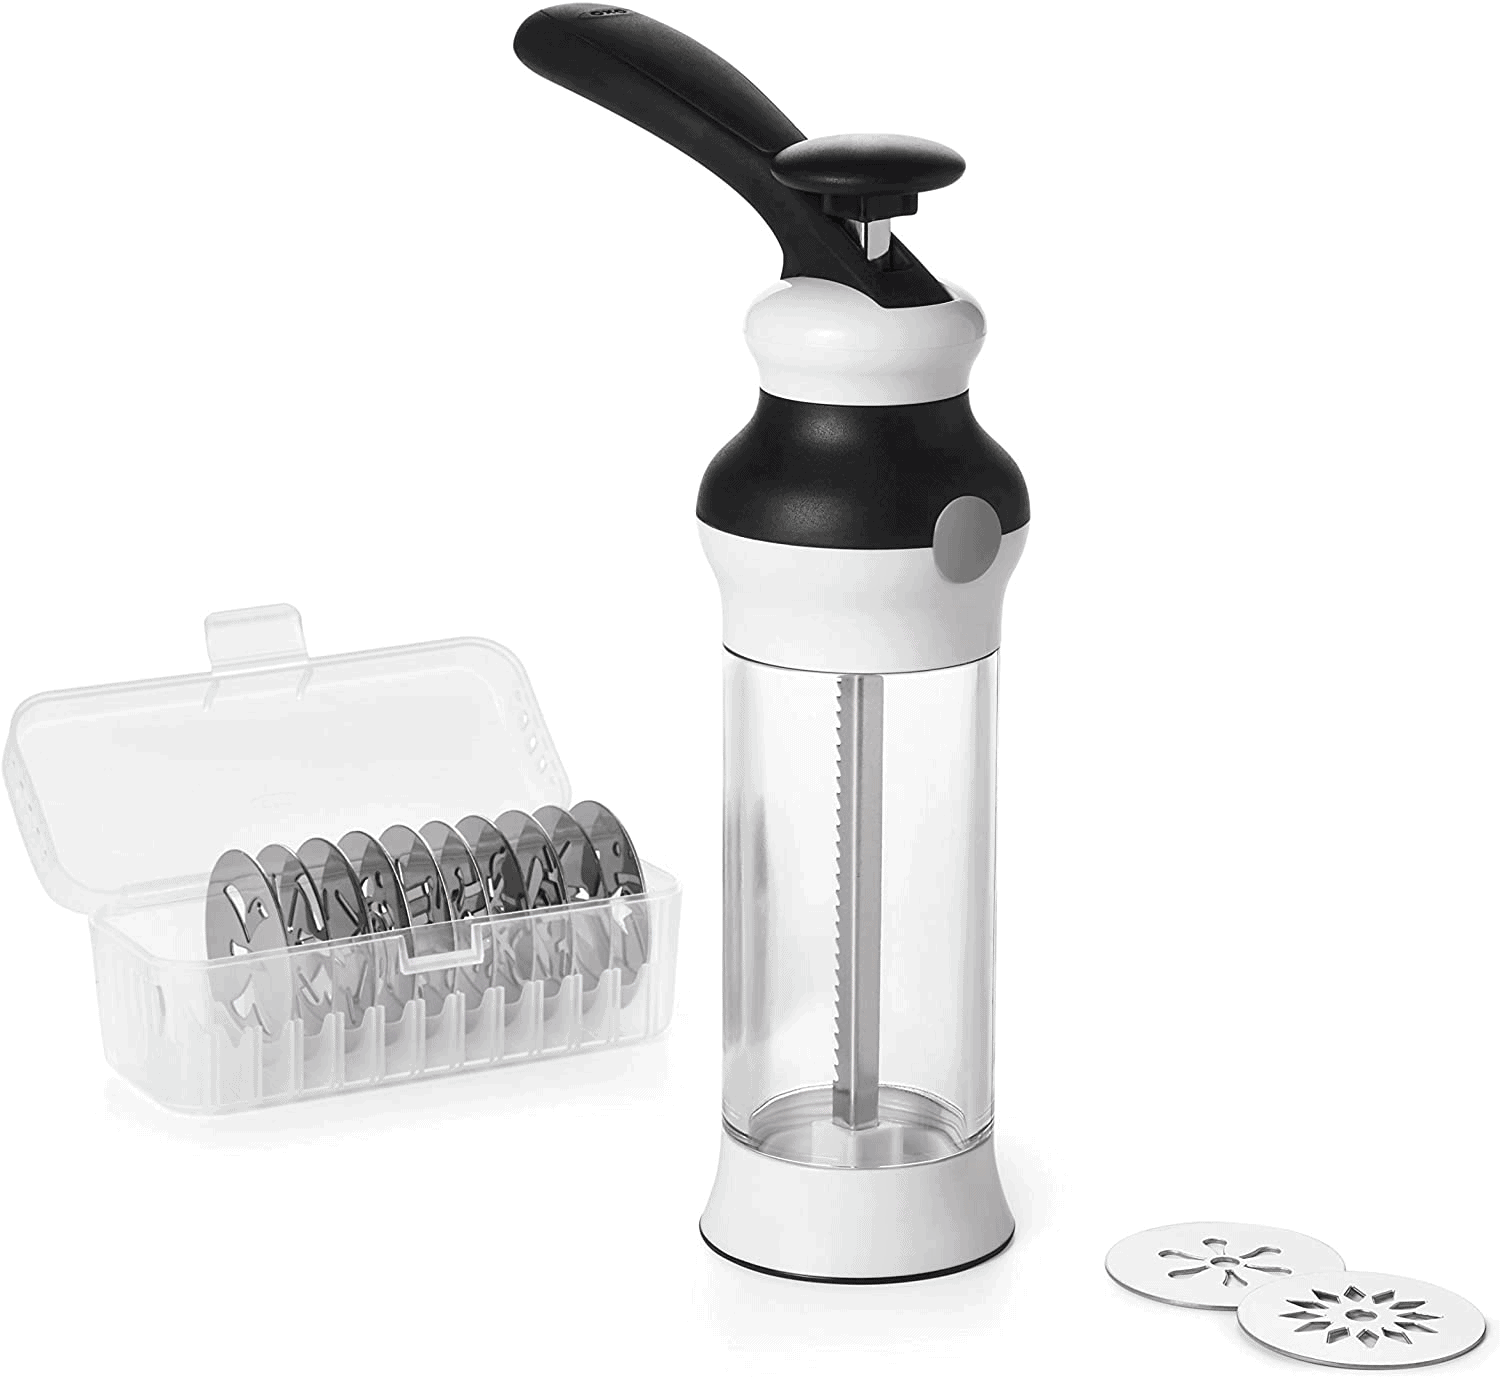 Best Cookie Press For Making Cheese Straws 2